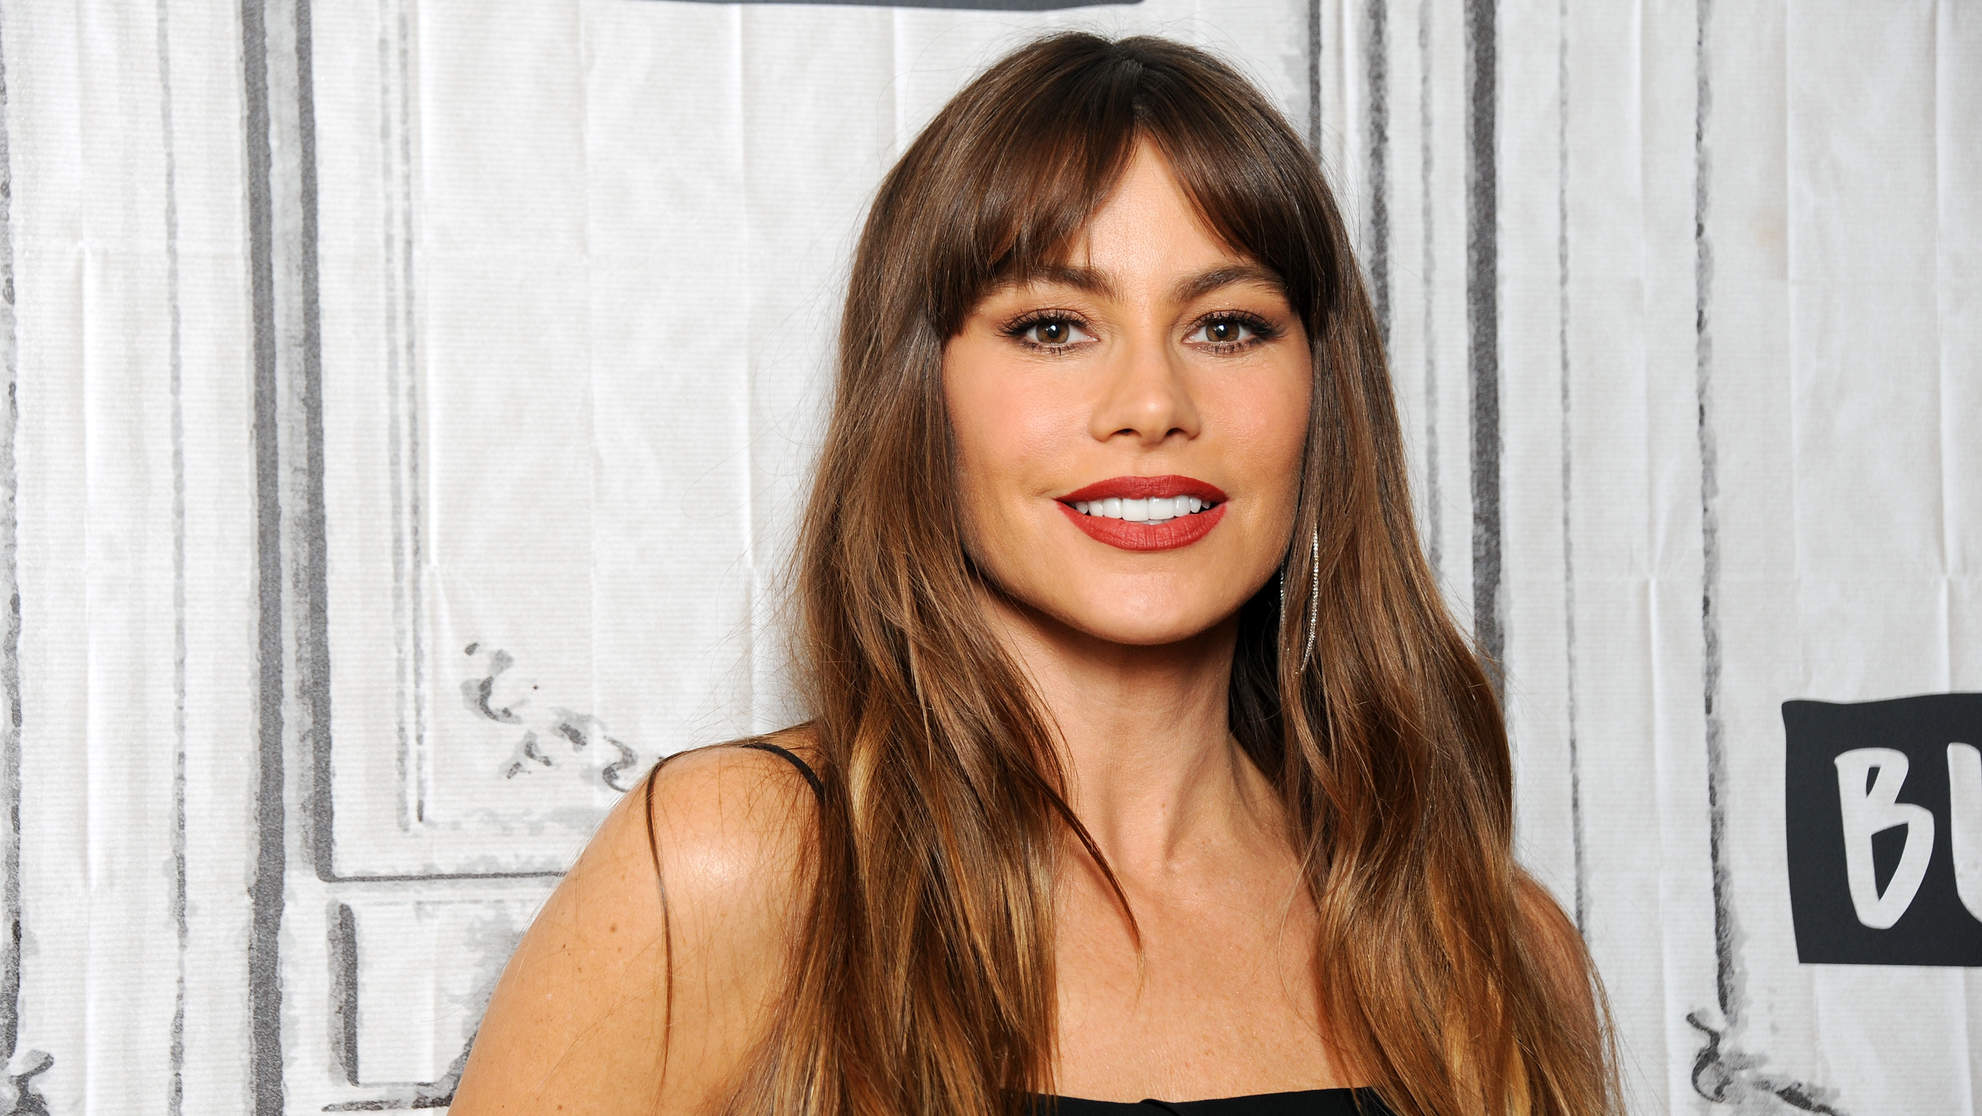 The $30 Jeans That Make Sofia Vergara's Curves Look Amazing